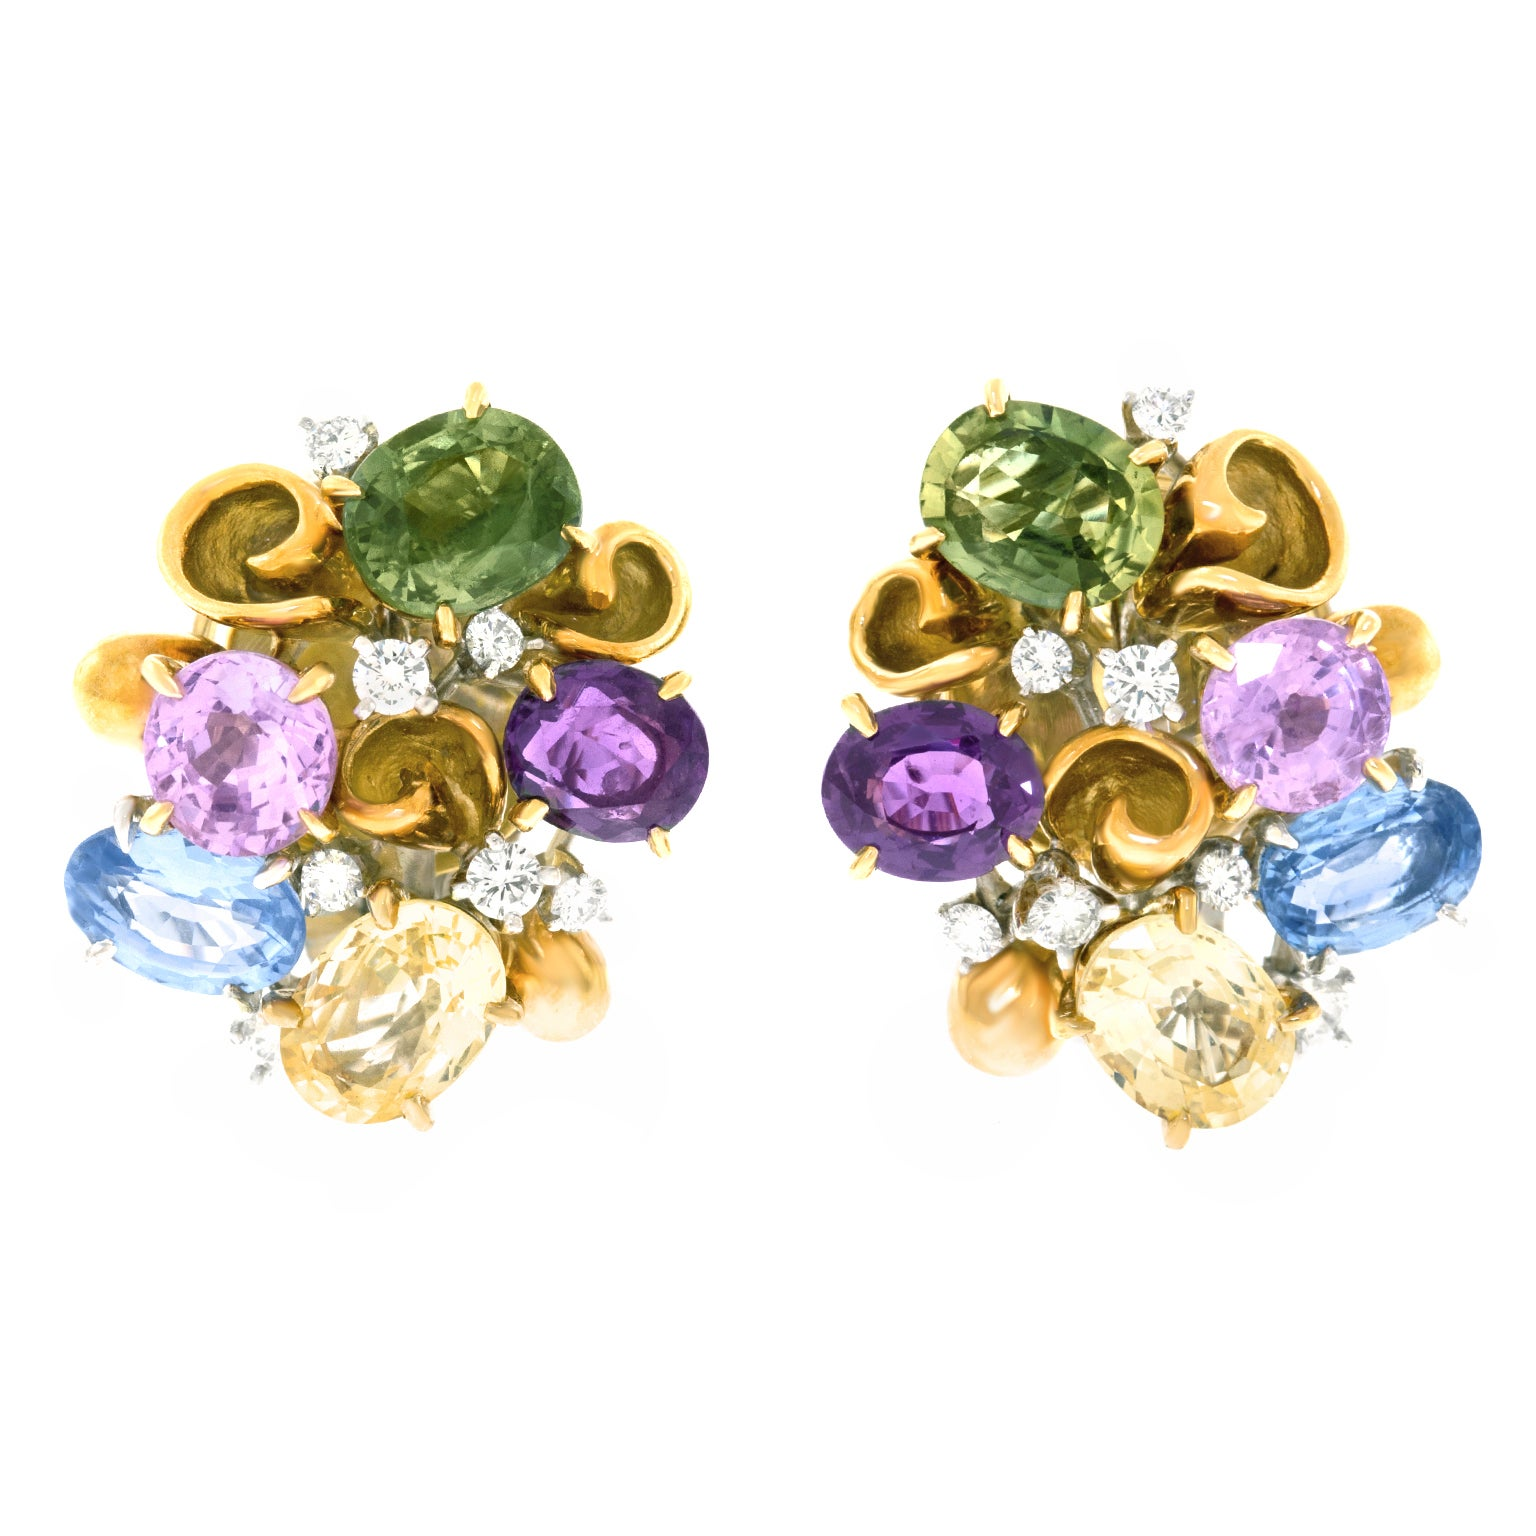 3f86bf8167ca7 Emil Meister Sapphire and Diamond Set Gold Earrings